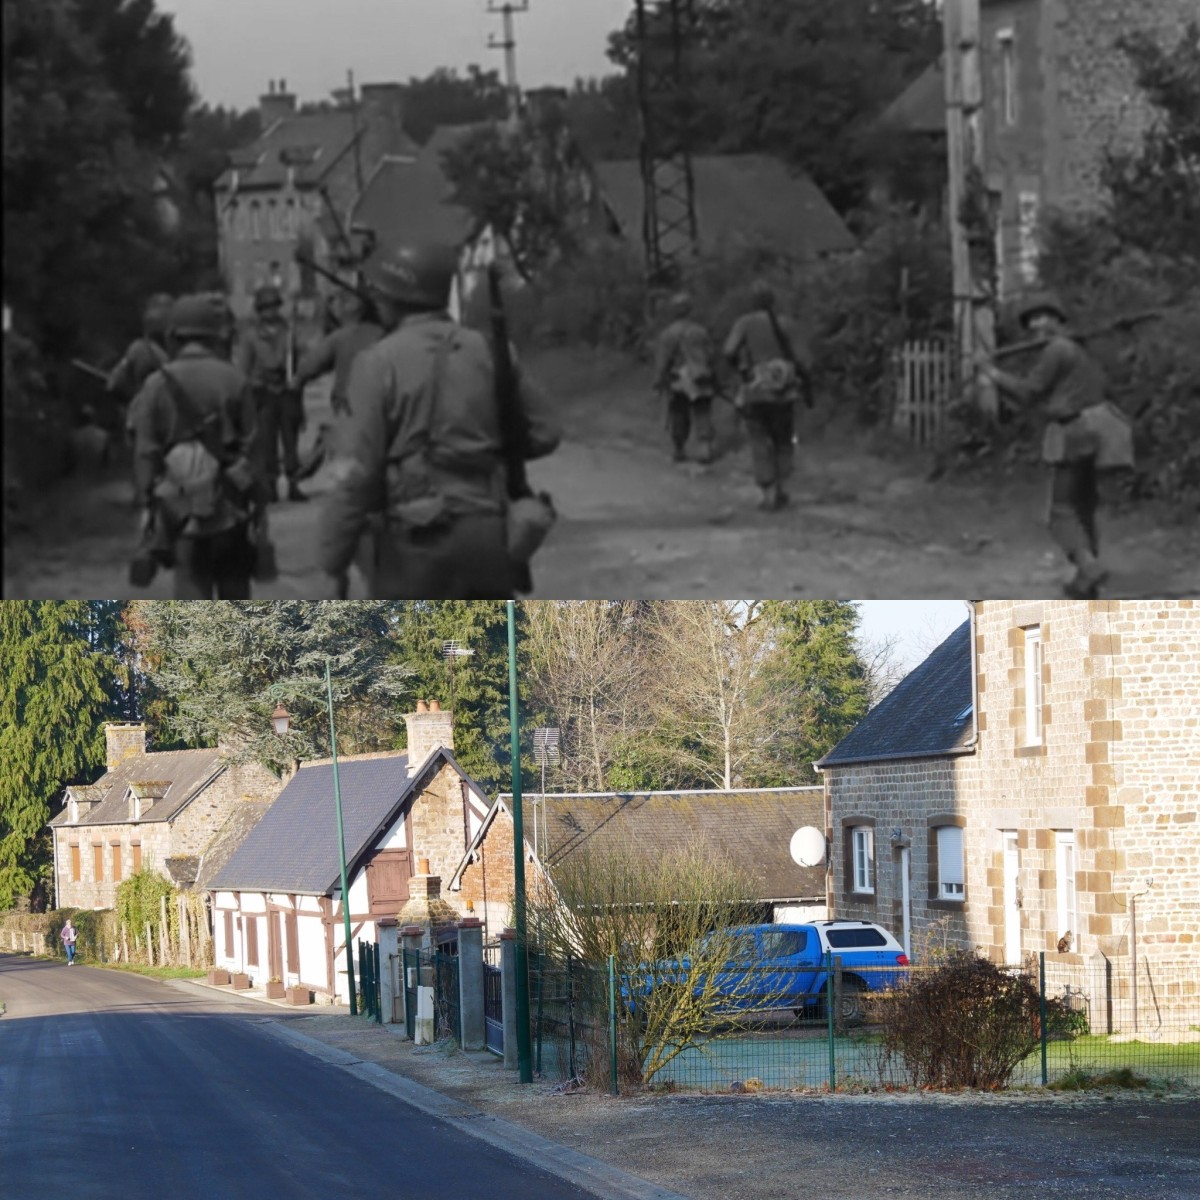 5. Men walking in a western direction on the Rue des Écoliers towards Lonlay-le-Tesson.